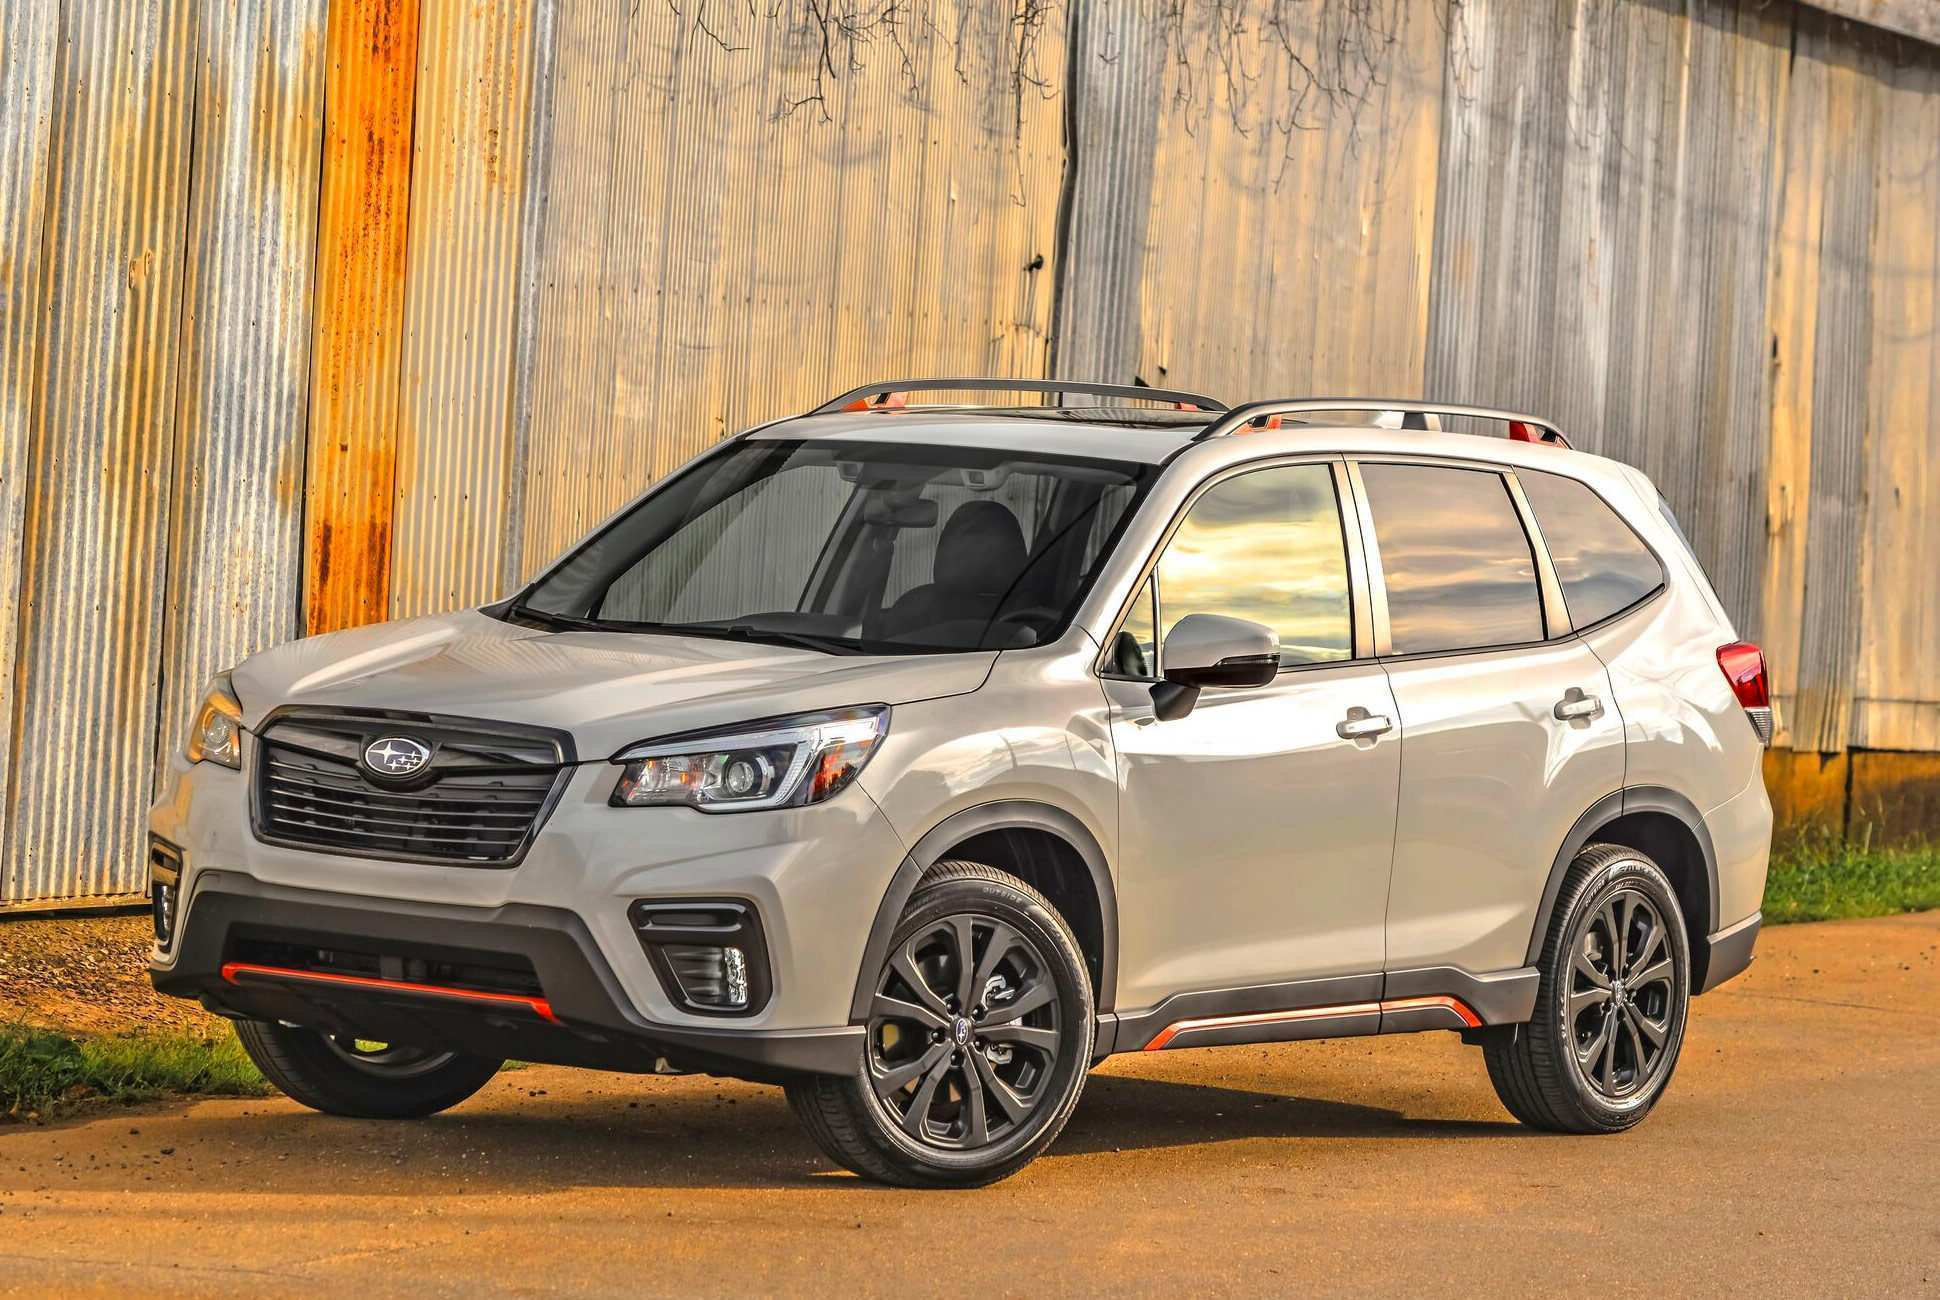 94 Concept of 2019 Subaru Forester Manual Price by 2019 Subaru Forester Manual